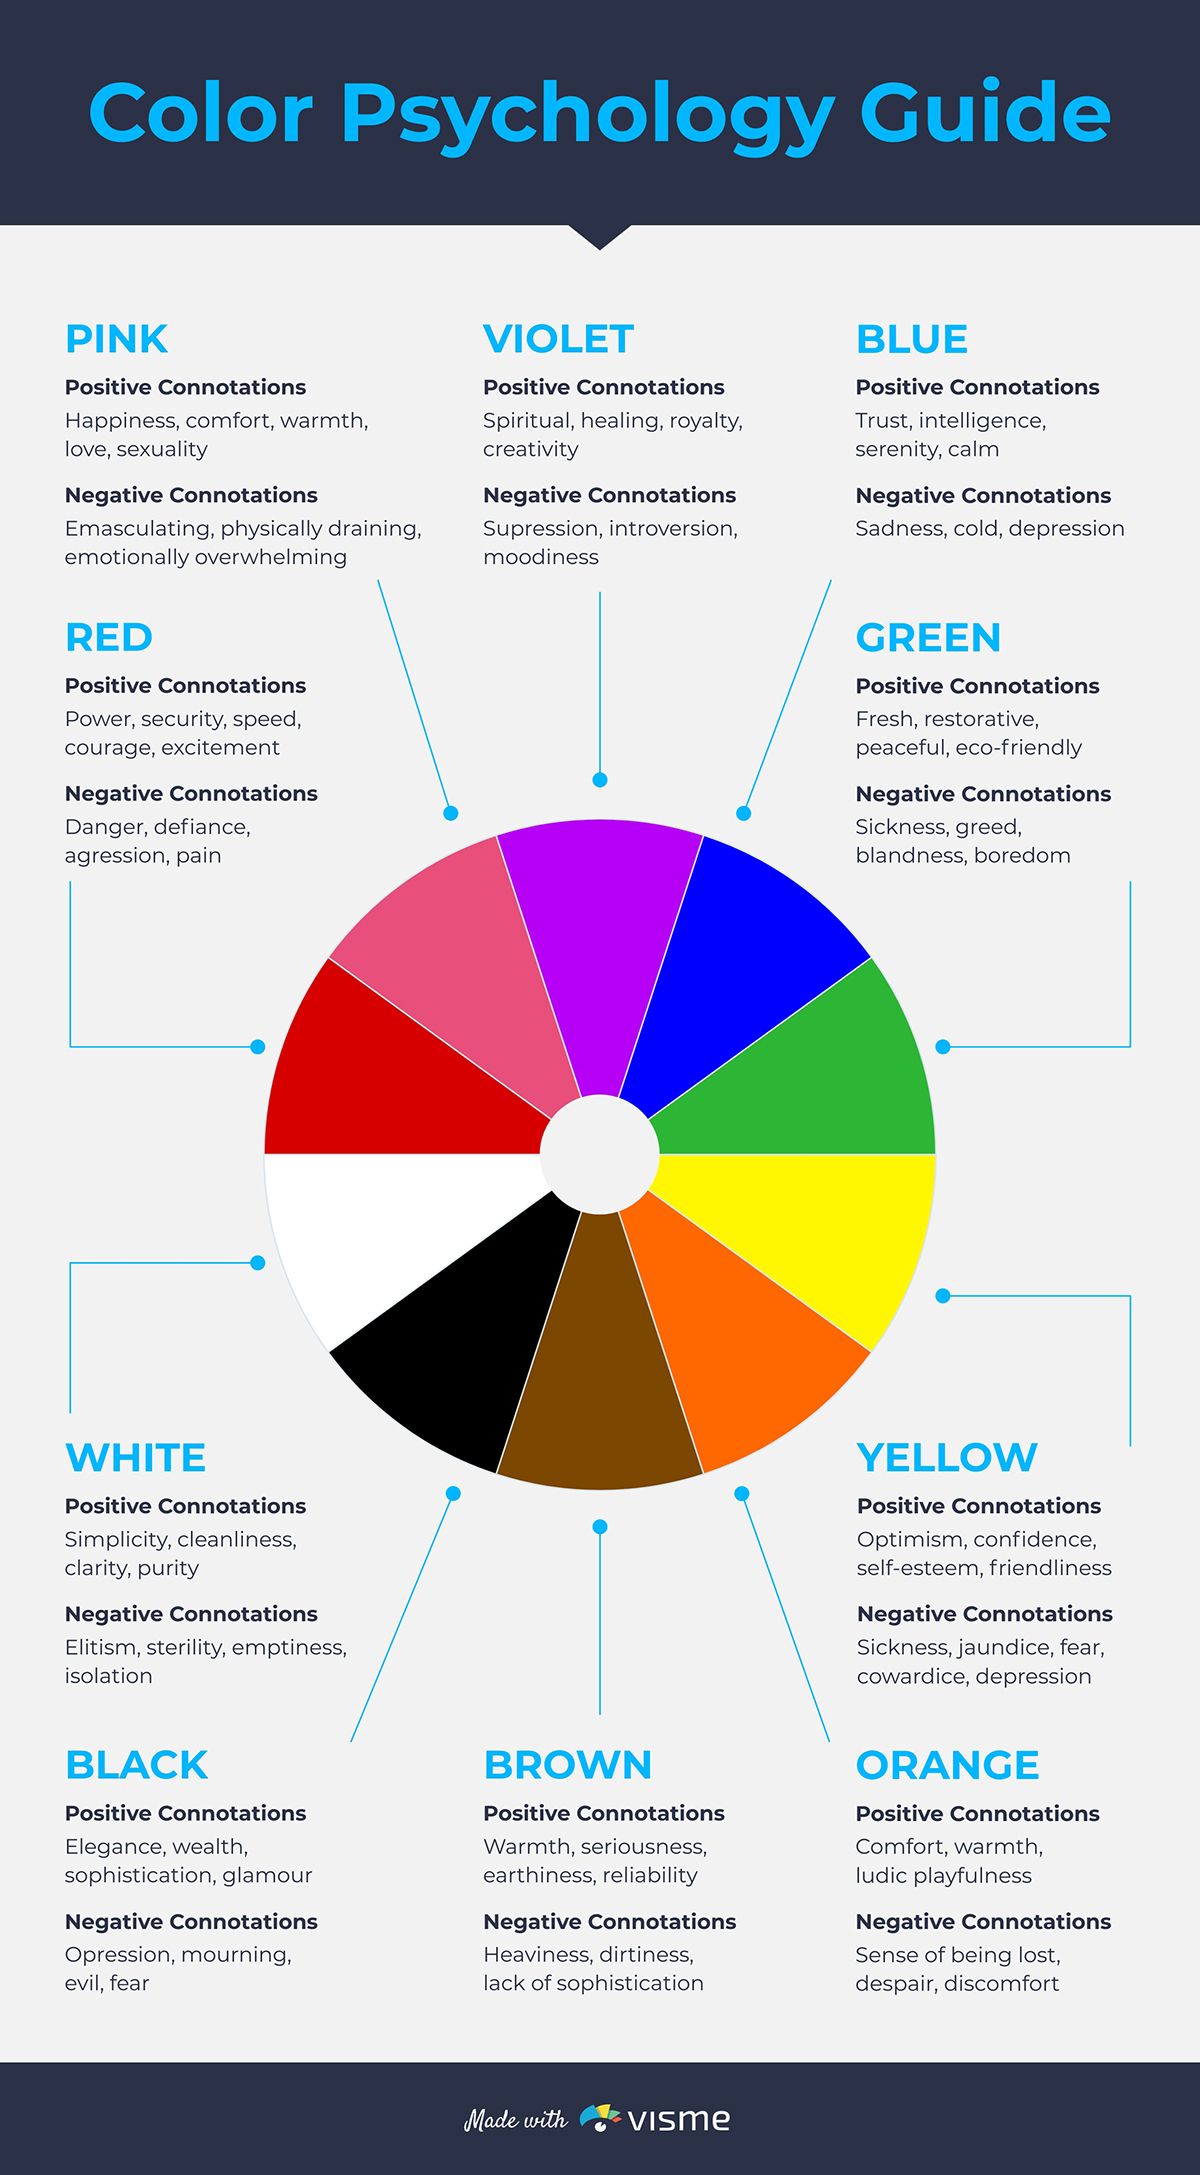 An infographic showcasing color psychology available in Visme.